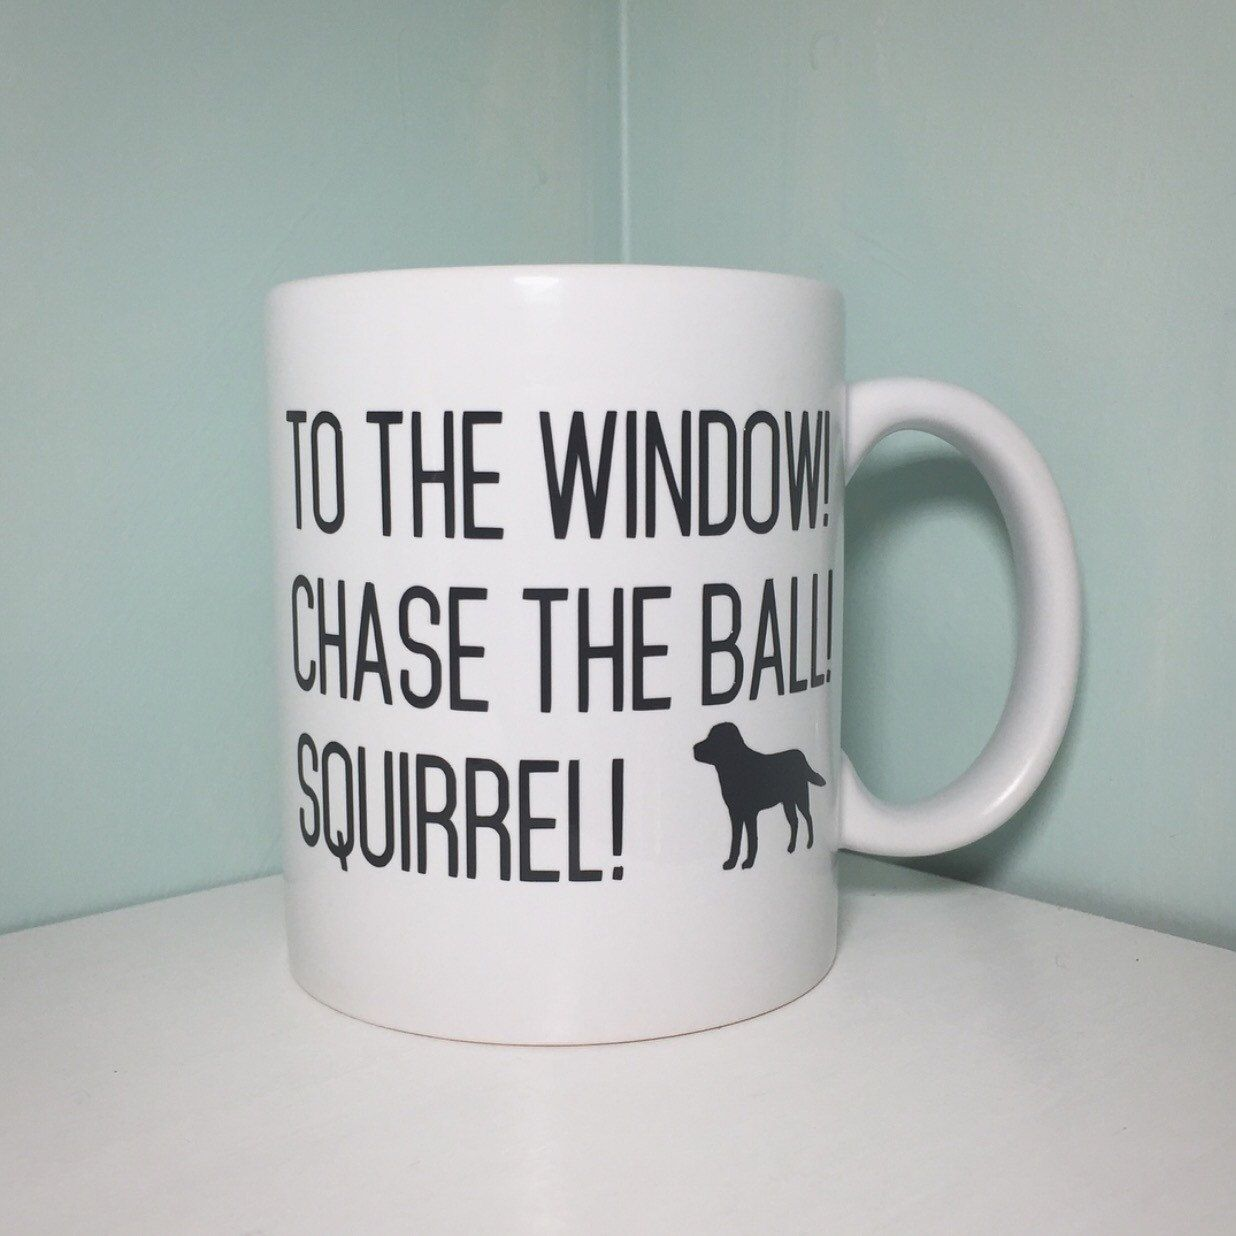 Yourstrulyemb Shared A New Photo On Etsy Perfect Coffee Cup Mugs Glassware